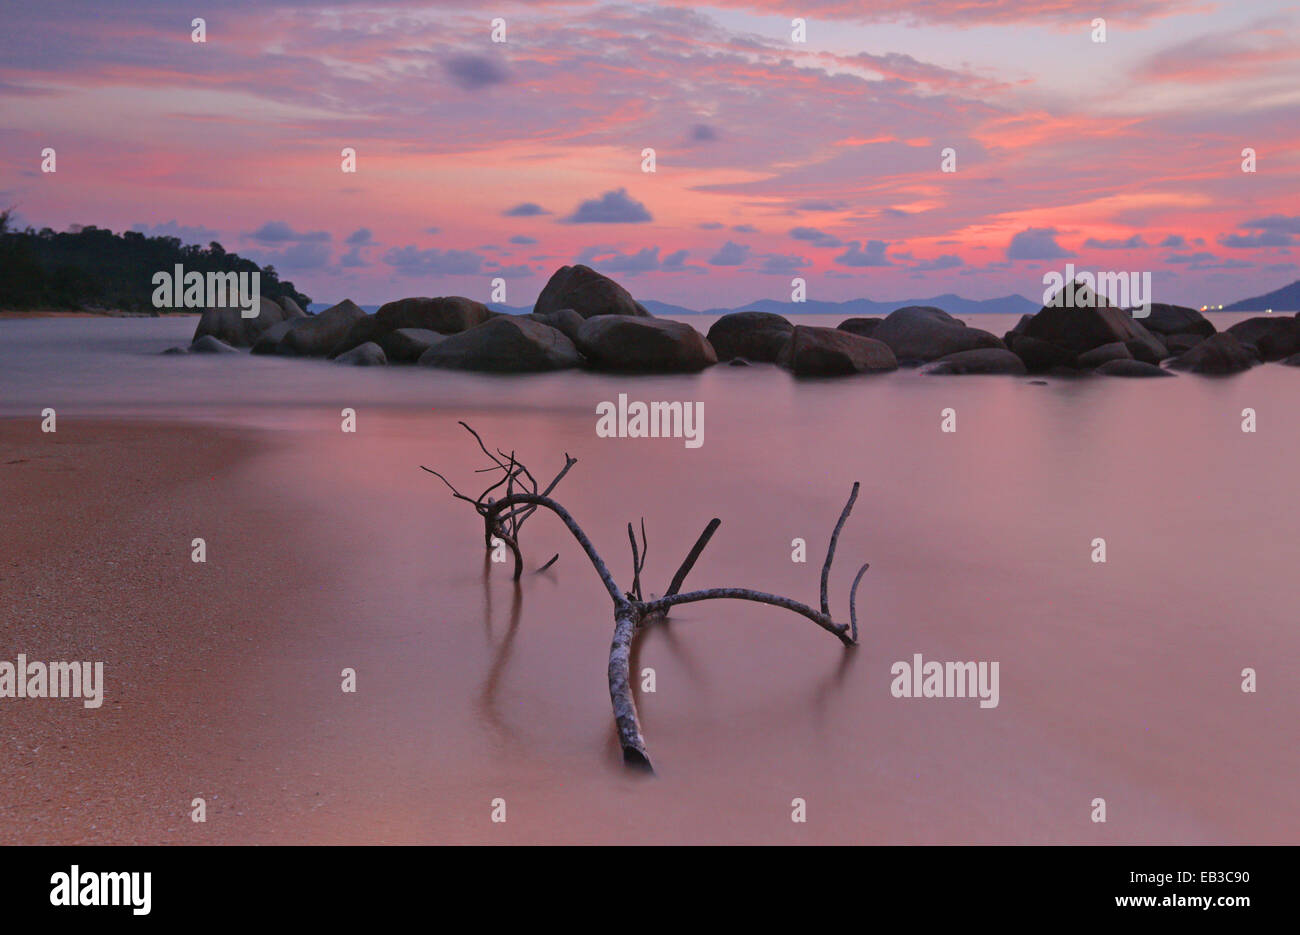 Indonesia, Singkawang, Kura Kura beach at sunset - Stock Image